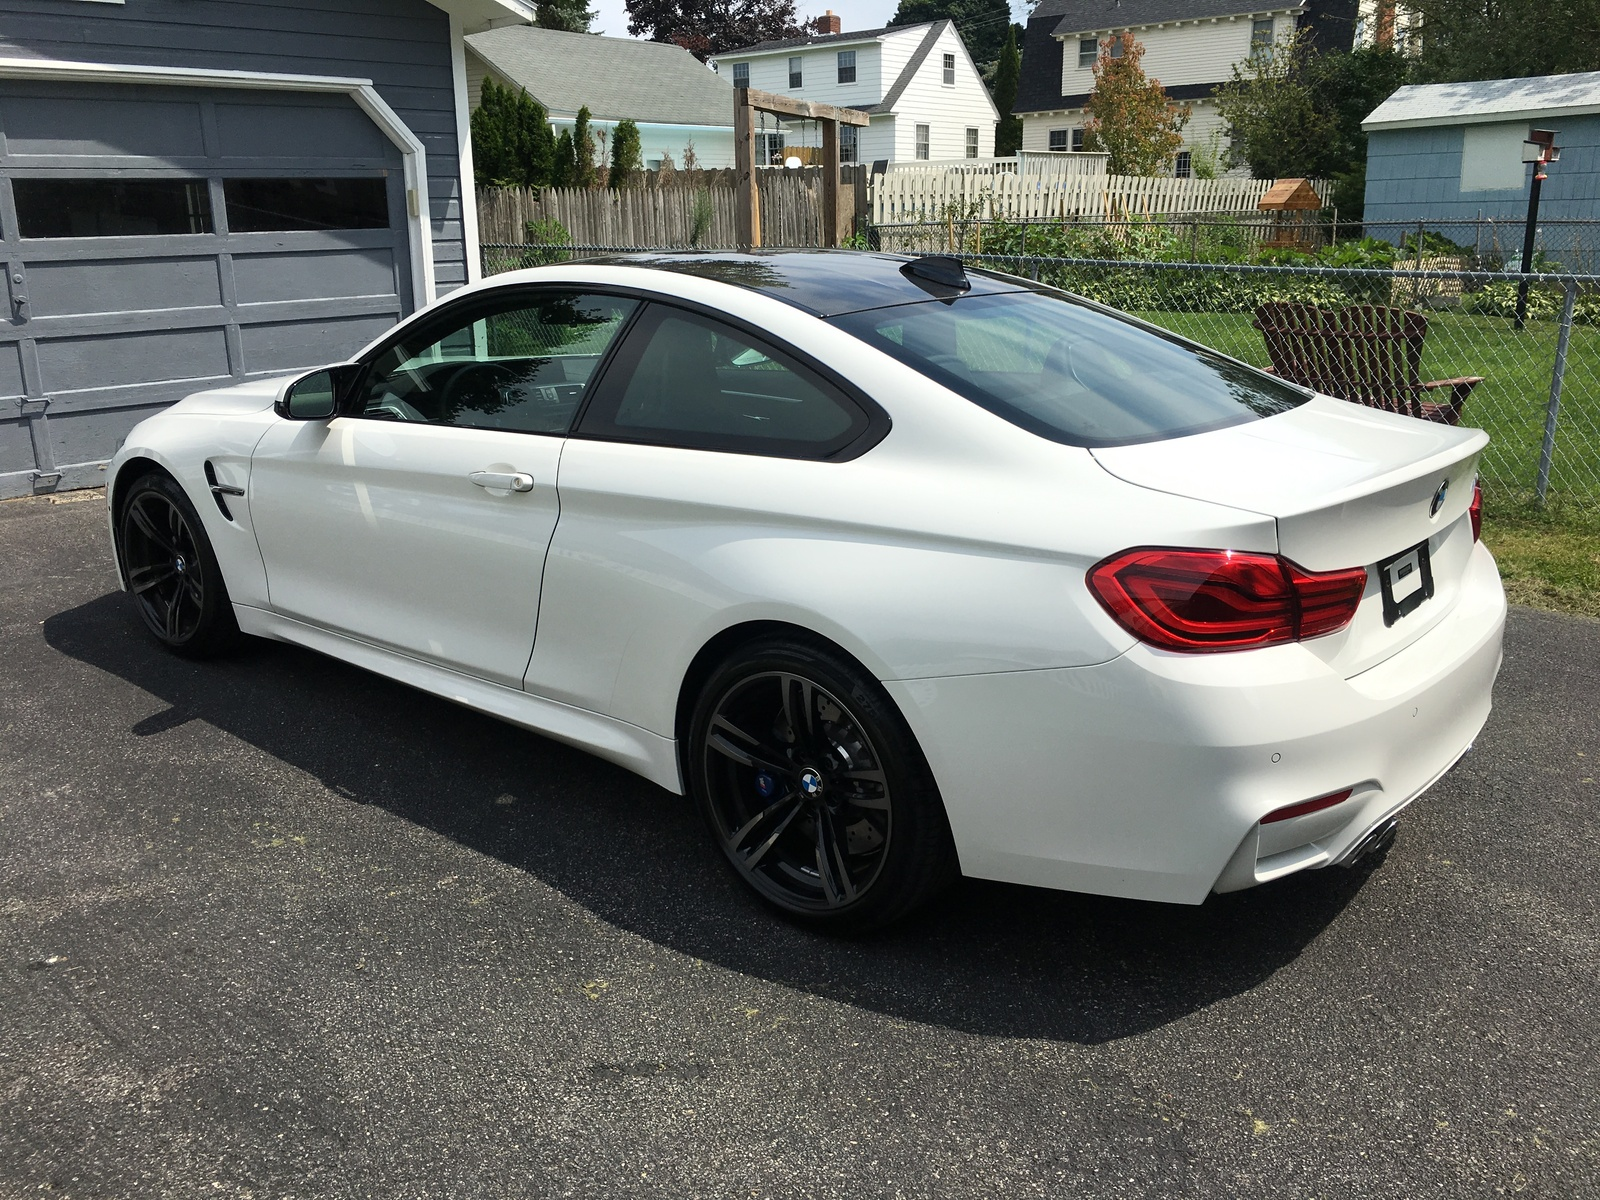 2017 2018 Bmw M4 For Sale In Minneapolis Mn Cargurus